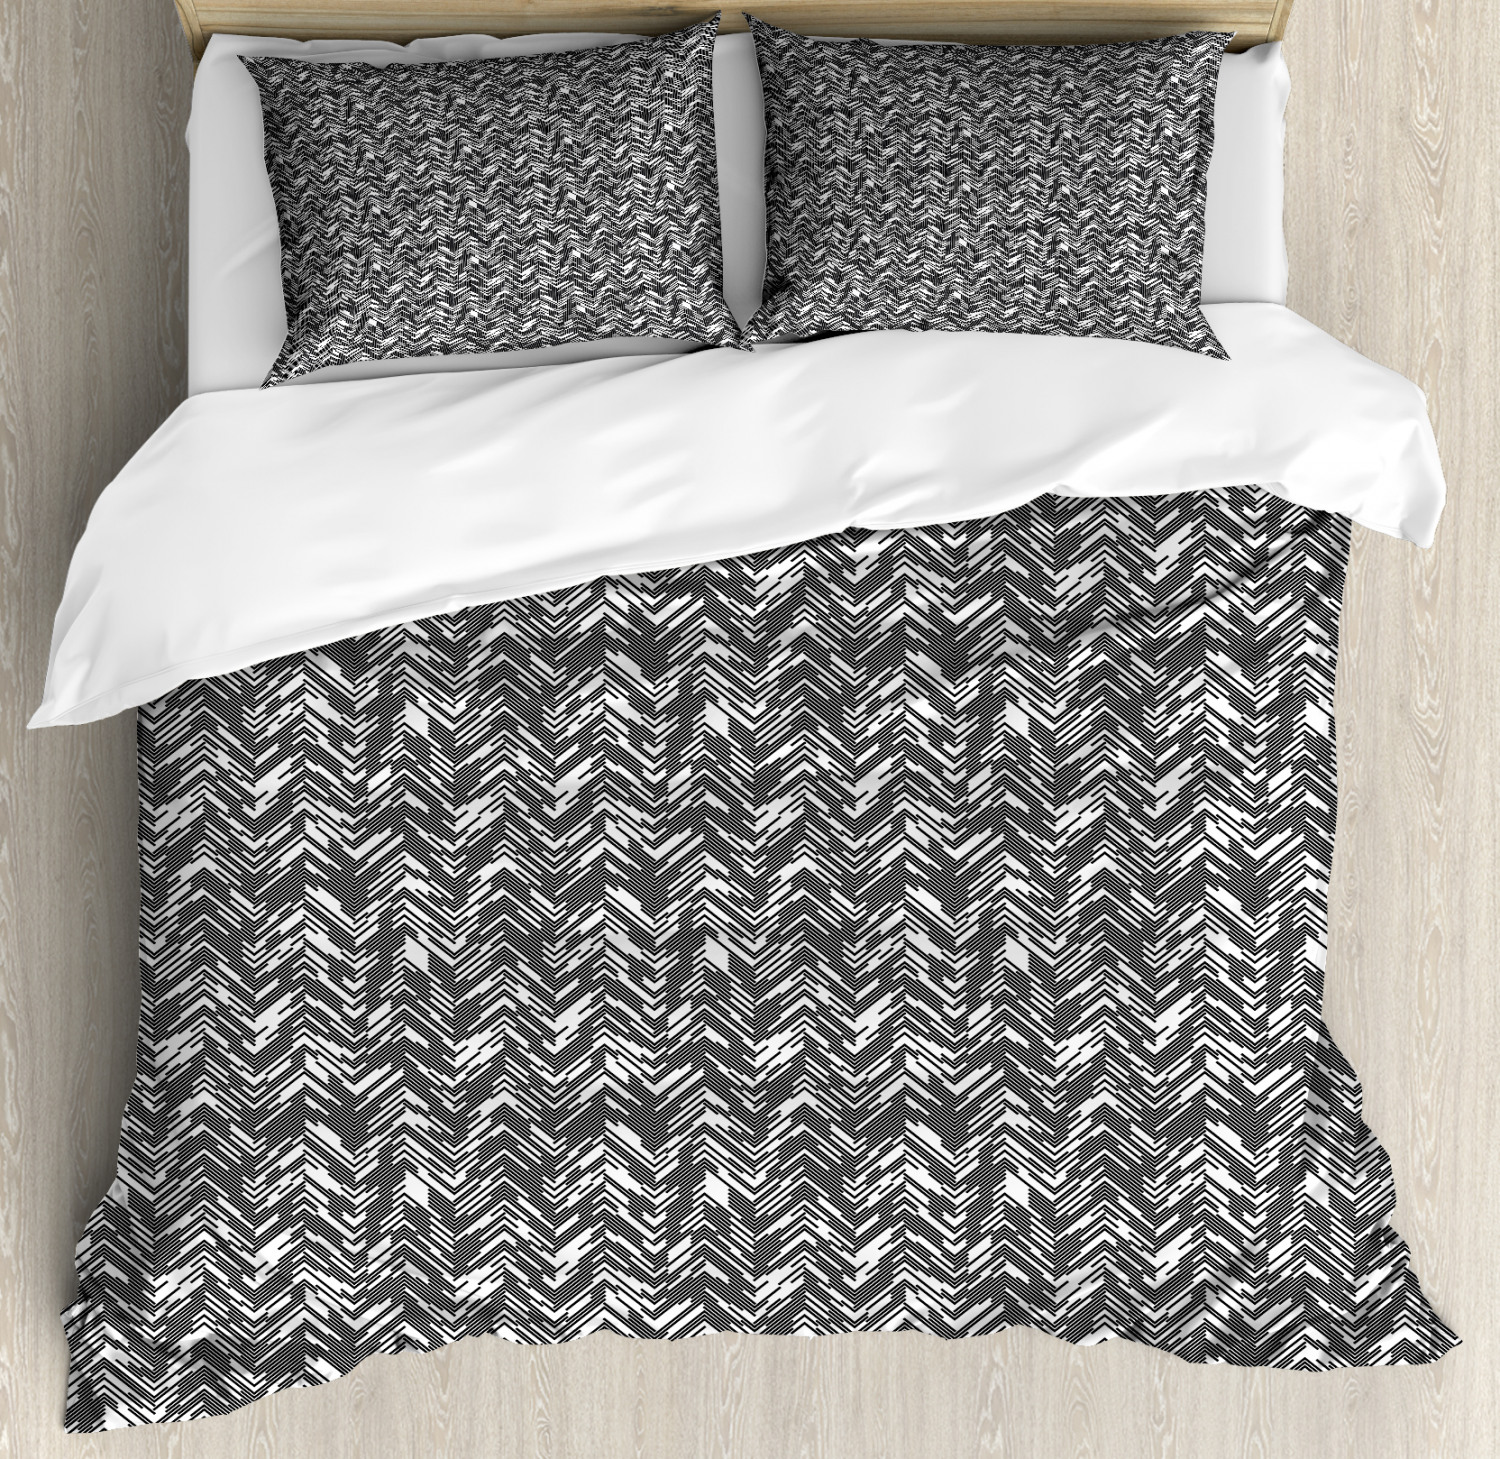 Abstract Duvet Cover Set with Pillow Shams Zigzags Roof Style Print